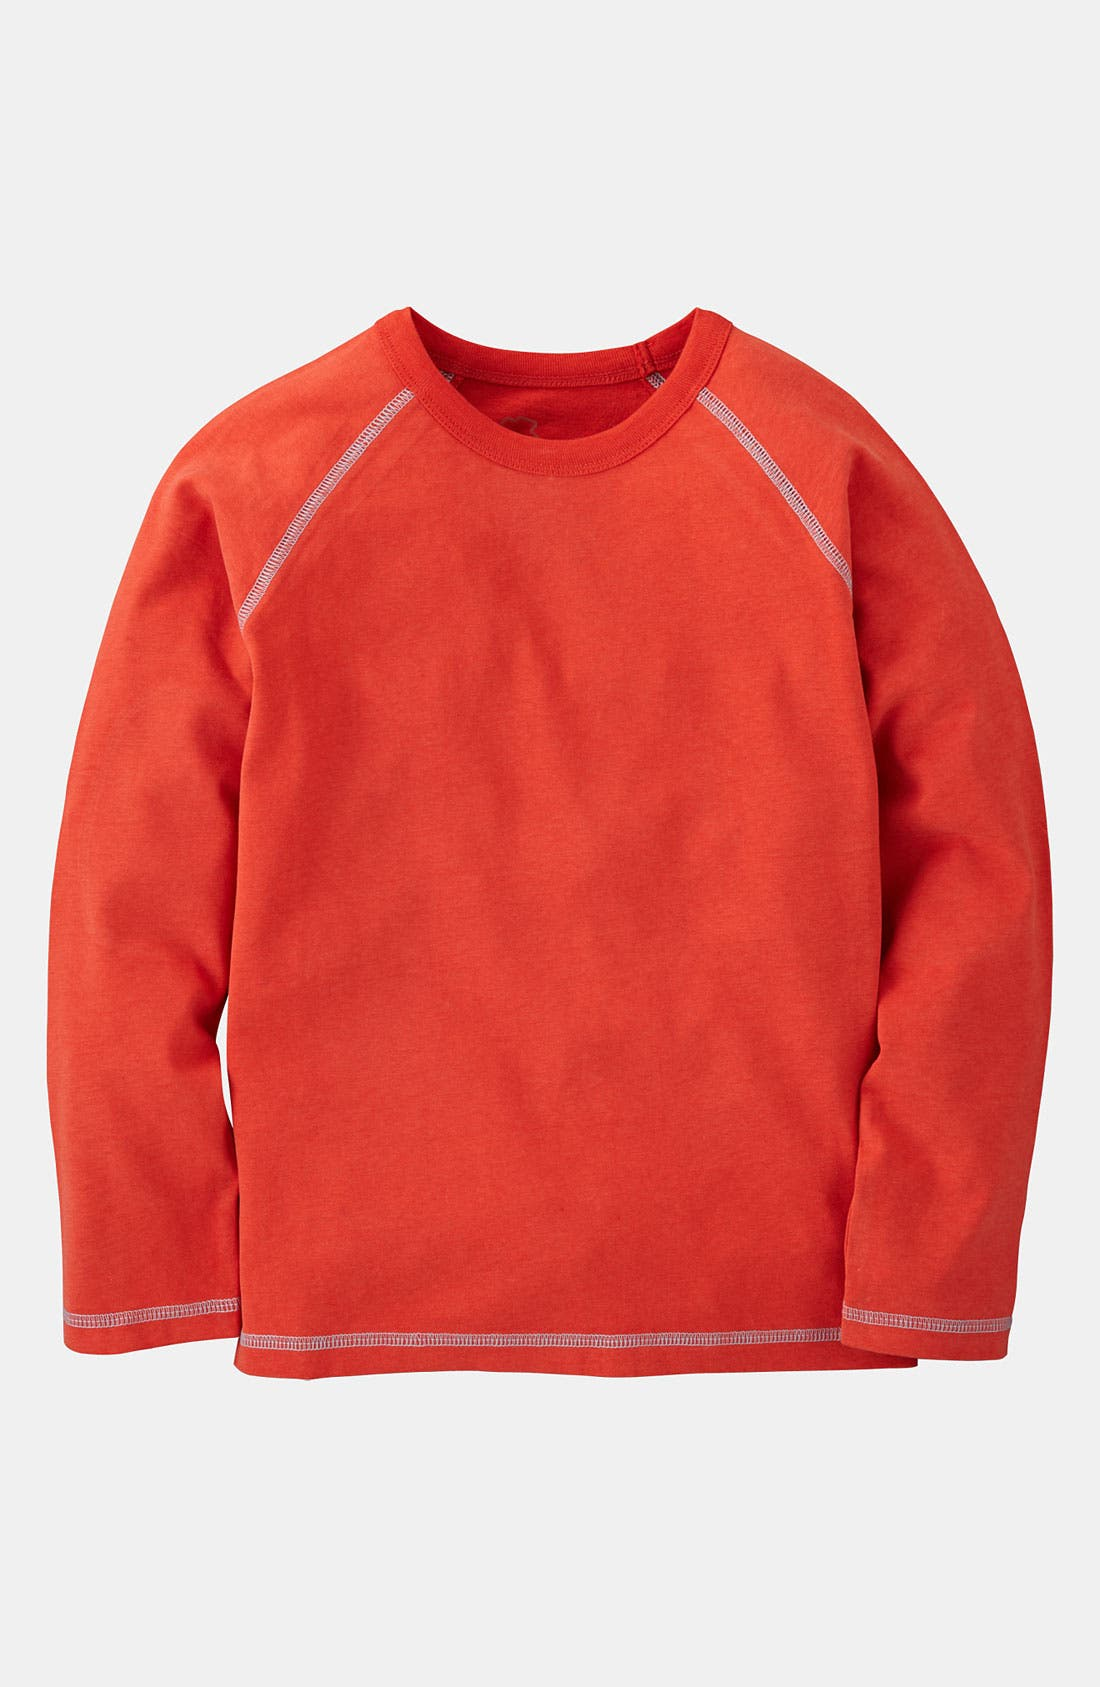 Main Image - Mini Boden Contrast Stitch T-Shirt (Toddler)